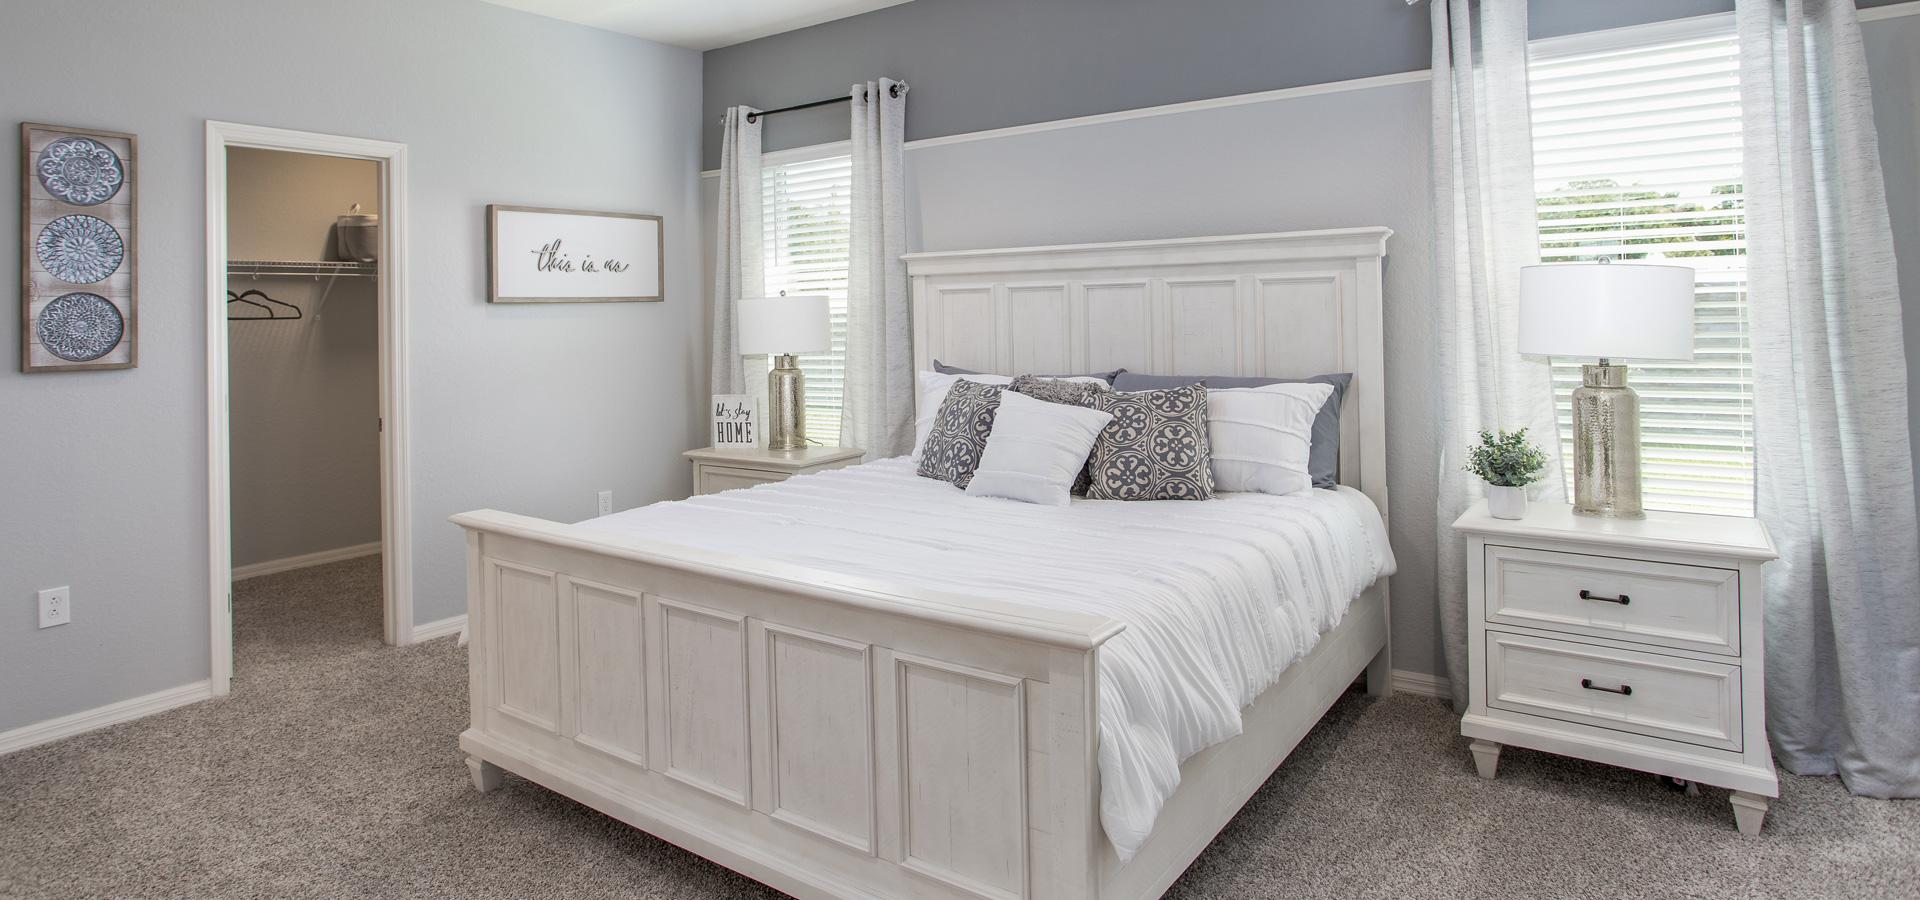 Luxurious primary bedroom with walk-in closet